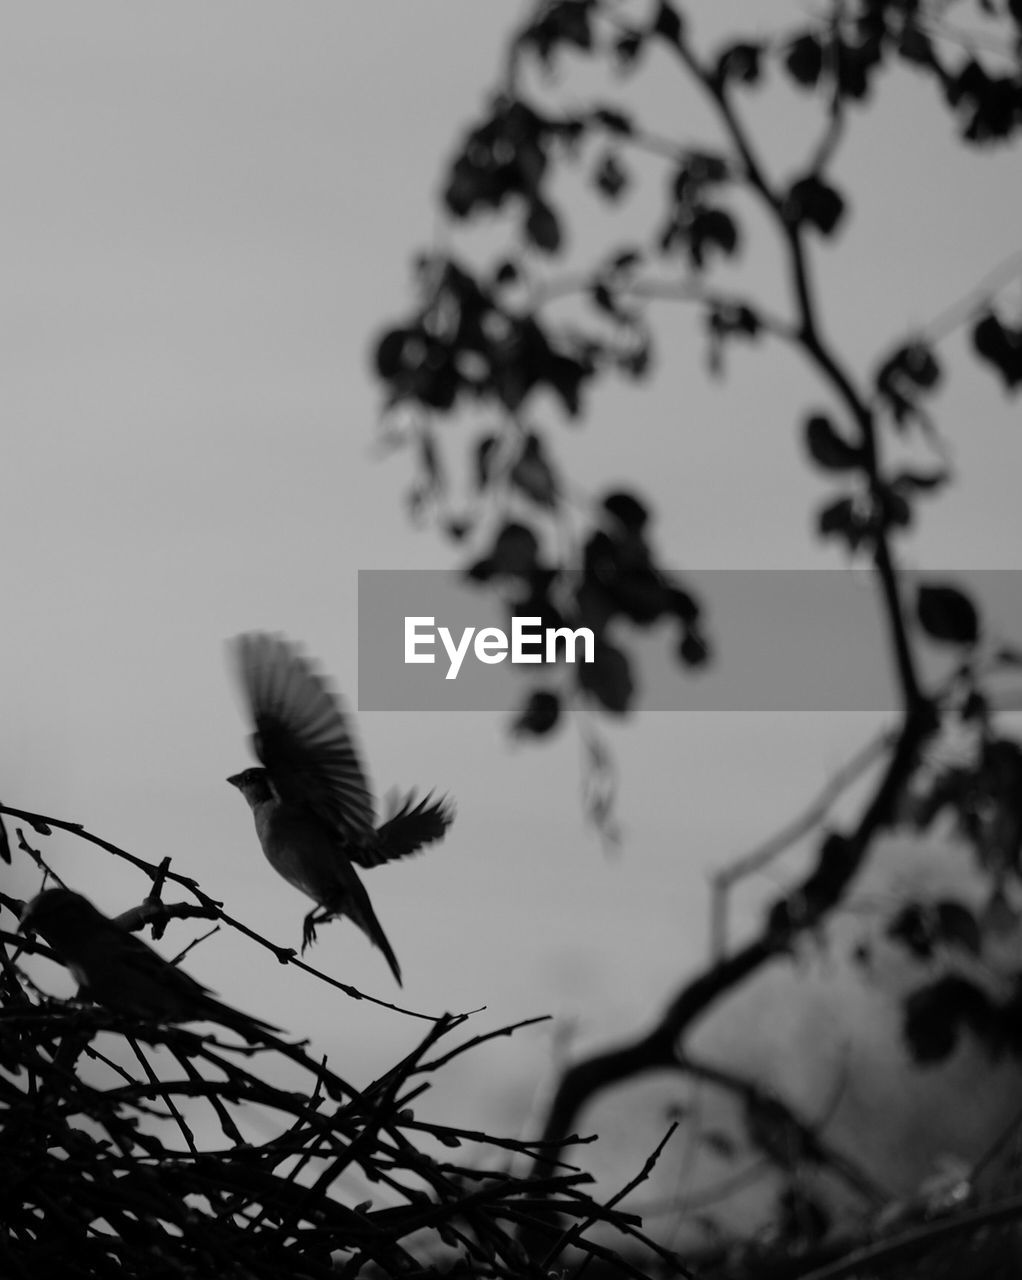 plant, sky, flying, animals in the wild, no people, nature, growth, animal themes, animal wildlife, tree, branch, focus on foreground, one animal, vertebrate, bird, animal, beauty in nature, flower, low angle view, close-up, outdoors